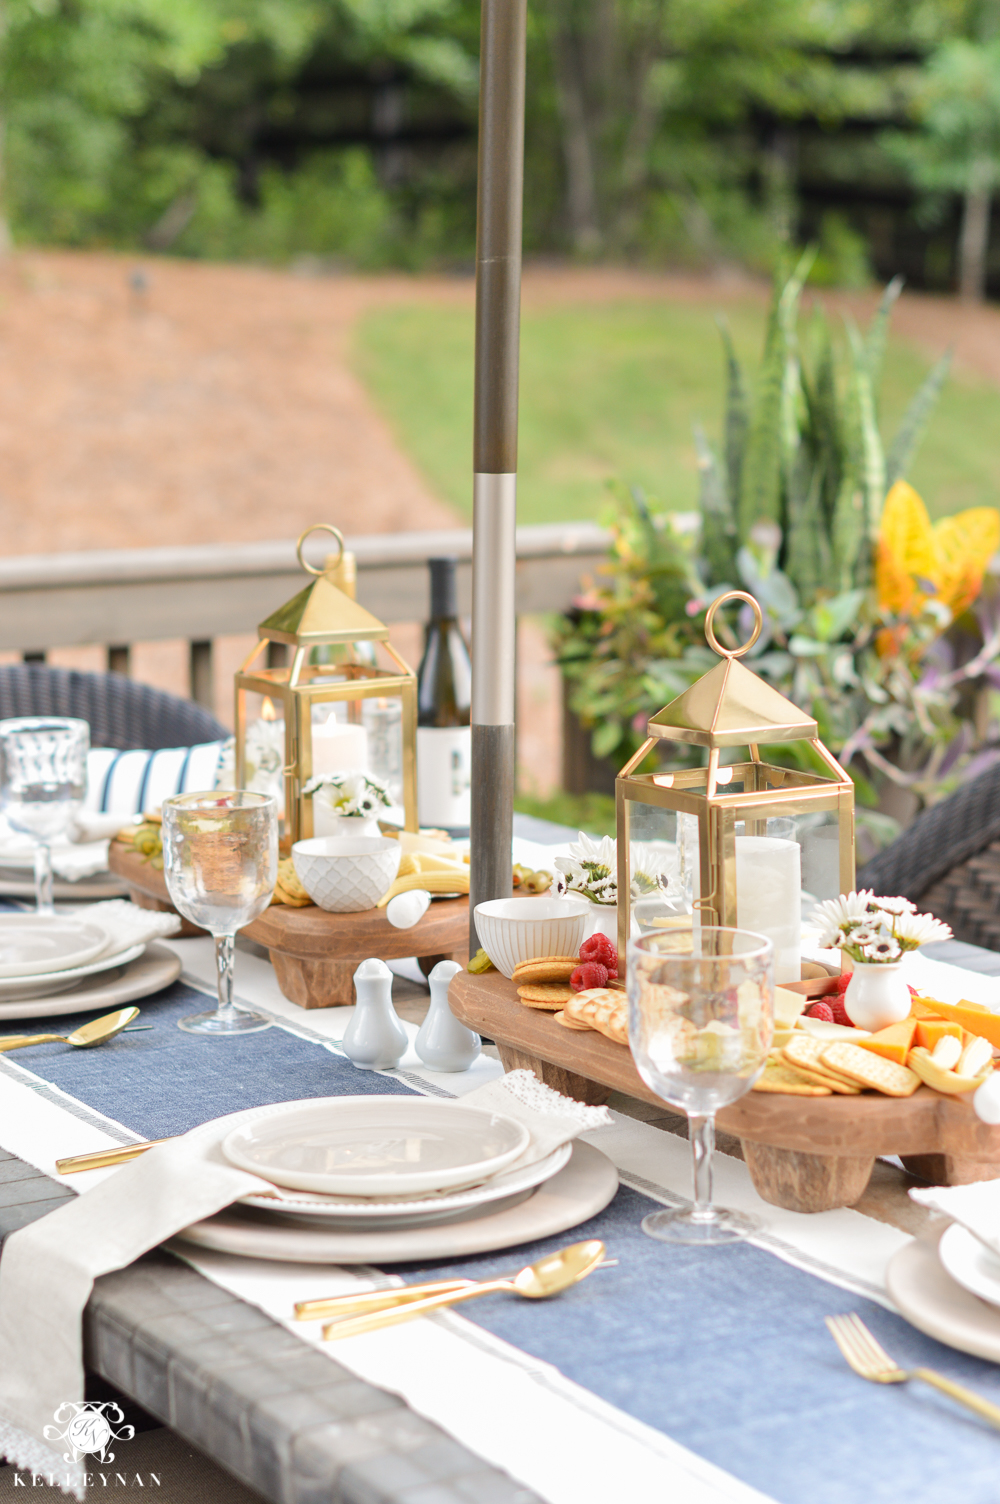 Outdoor Entertaining and Table Ideas with Cheese board appetizer centerpieces- with gold pottery barn lanterns